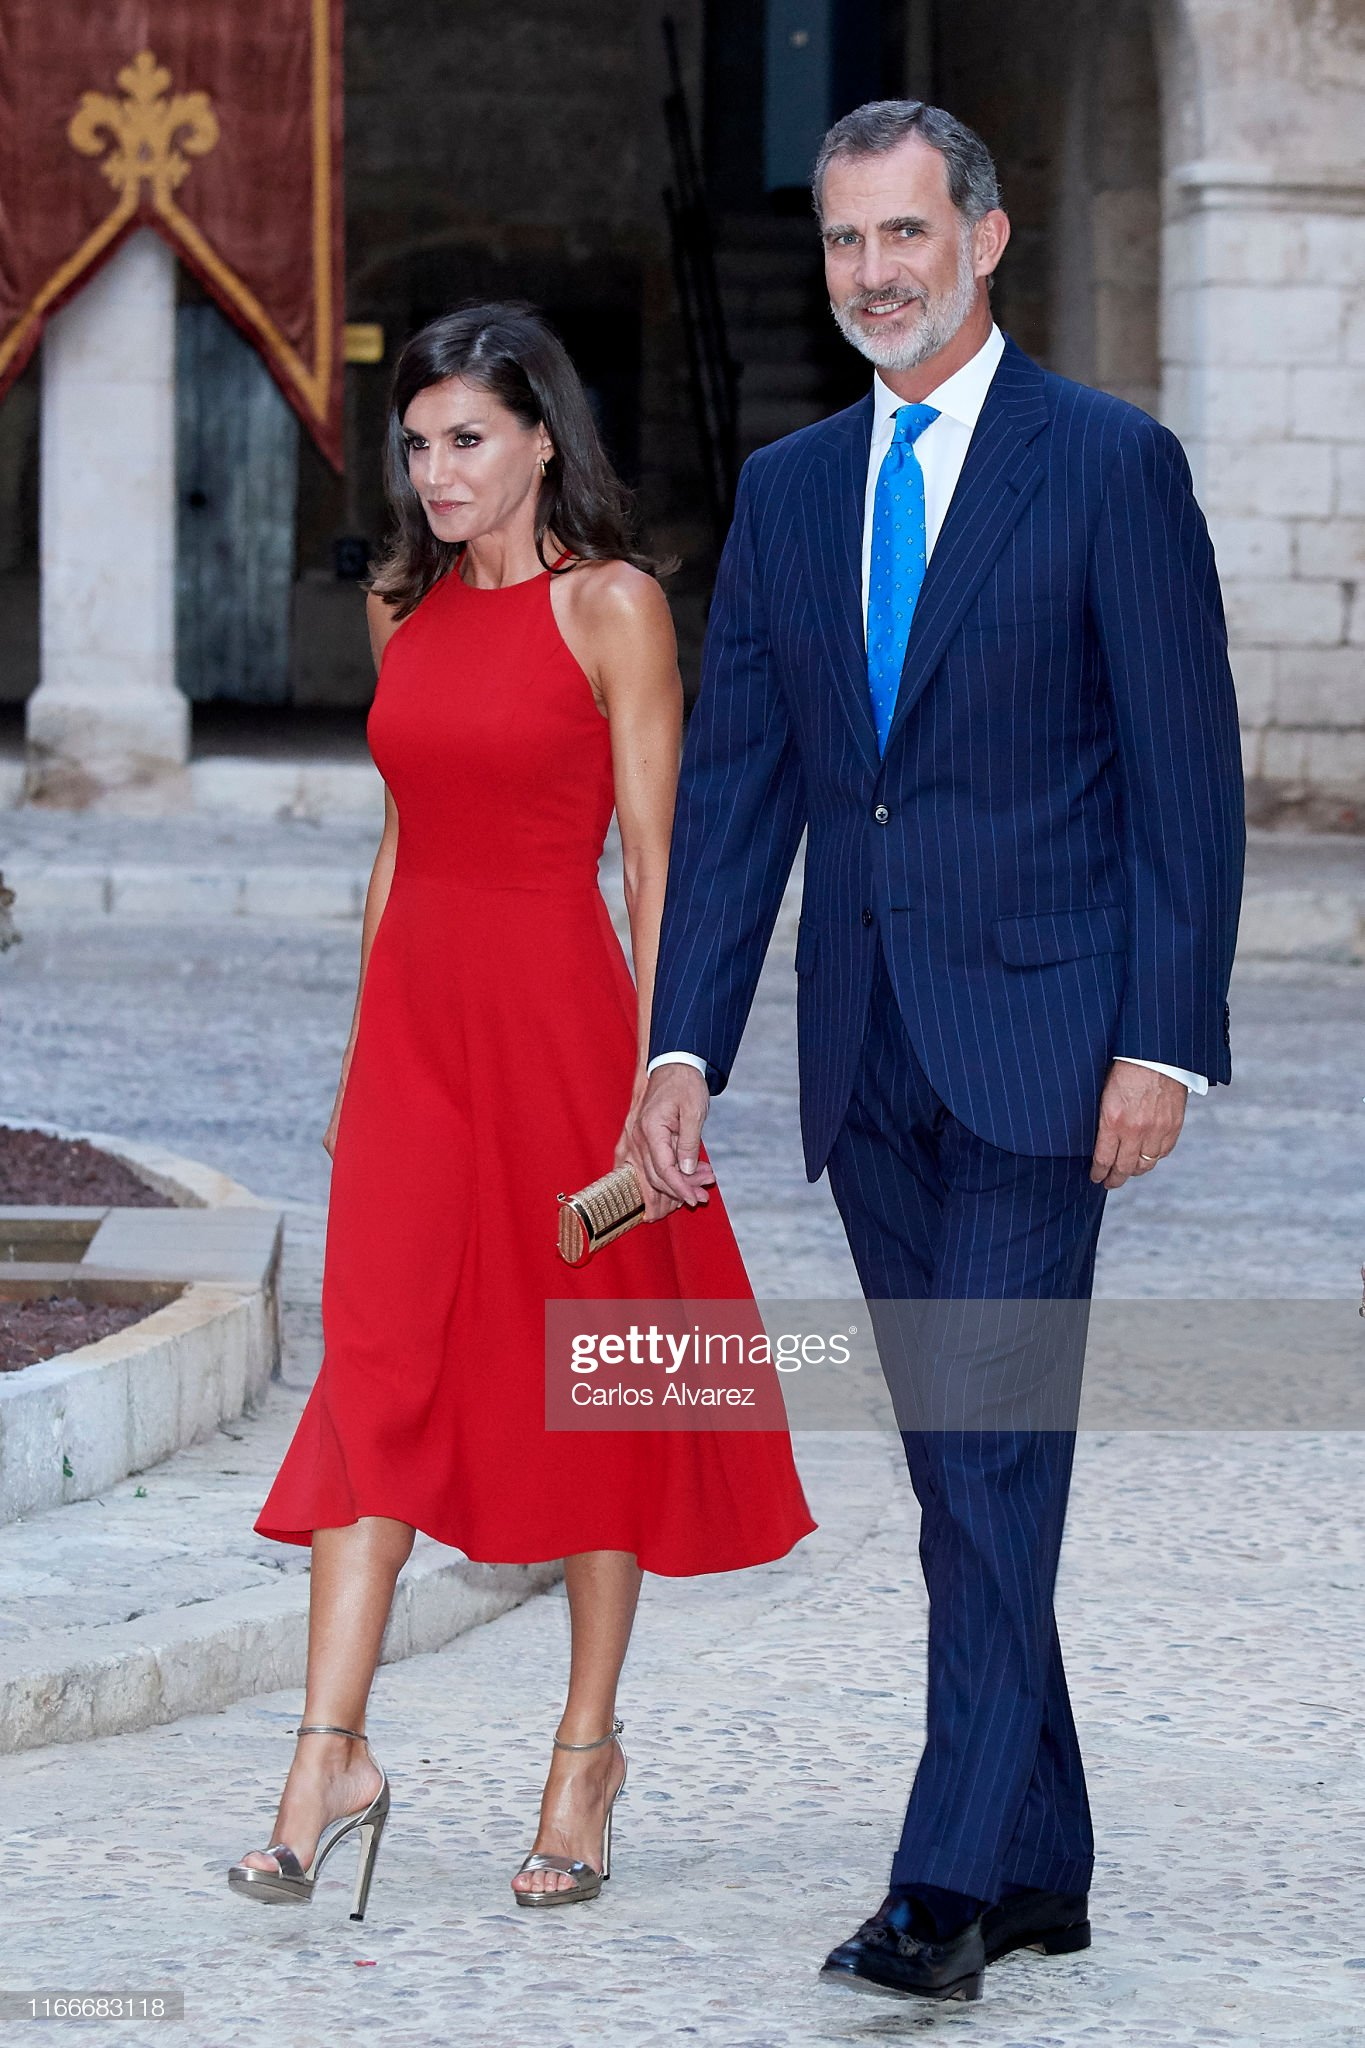 https://media.gettyimages.com/photos/king-felipe-vi-of-spain-and-queen-letizia-of-spain-host-a-dinner-for-picture-id1166683118?s=2048x2048